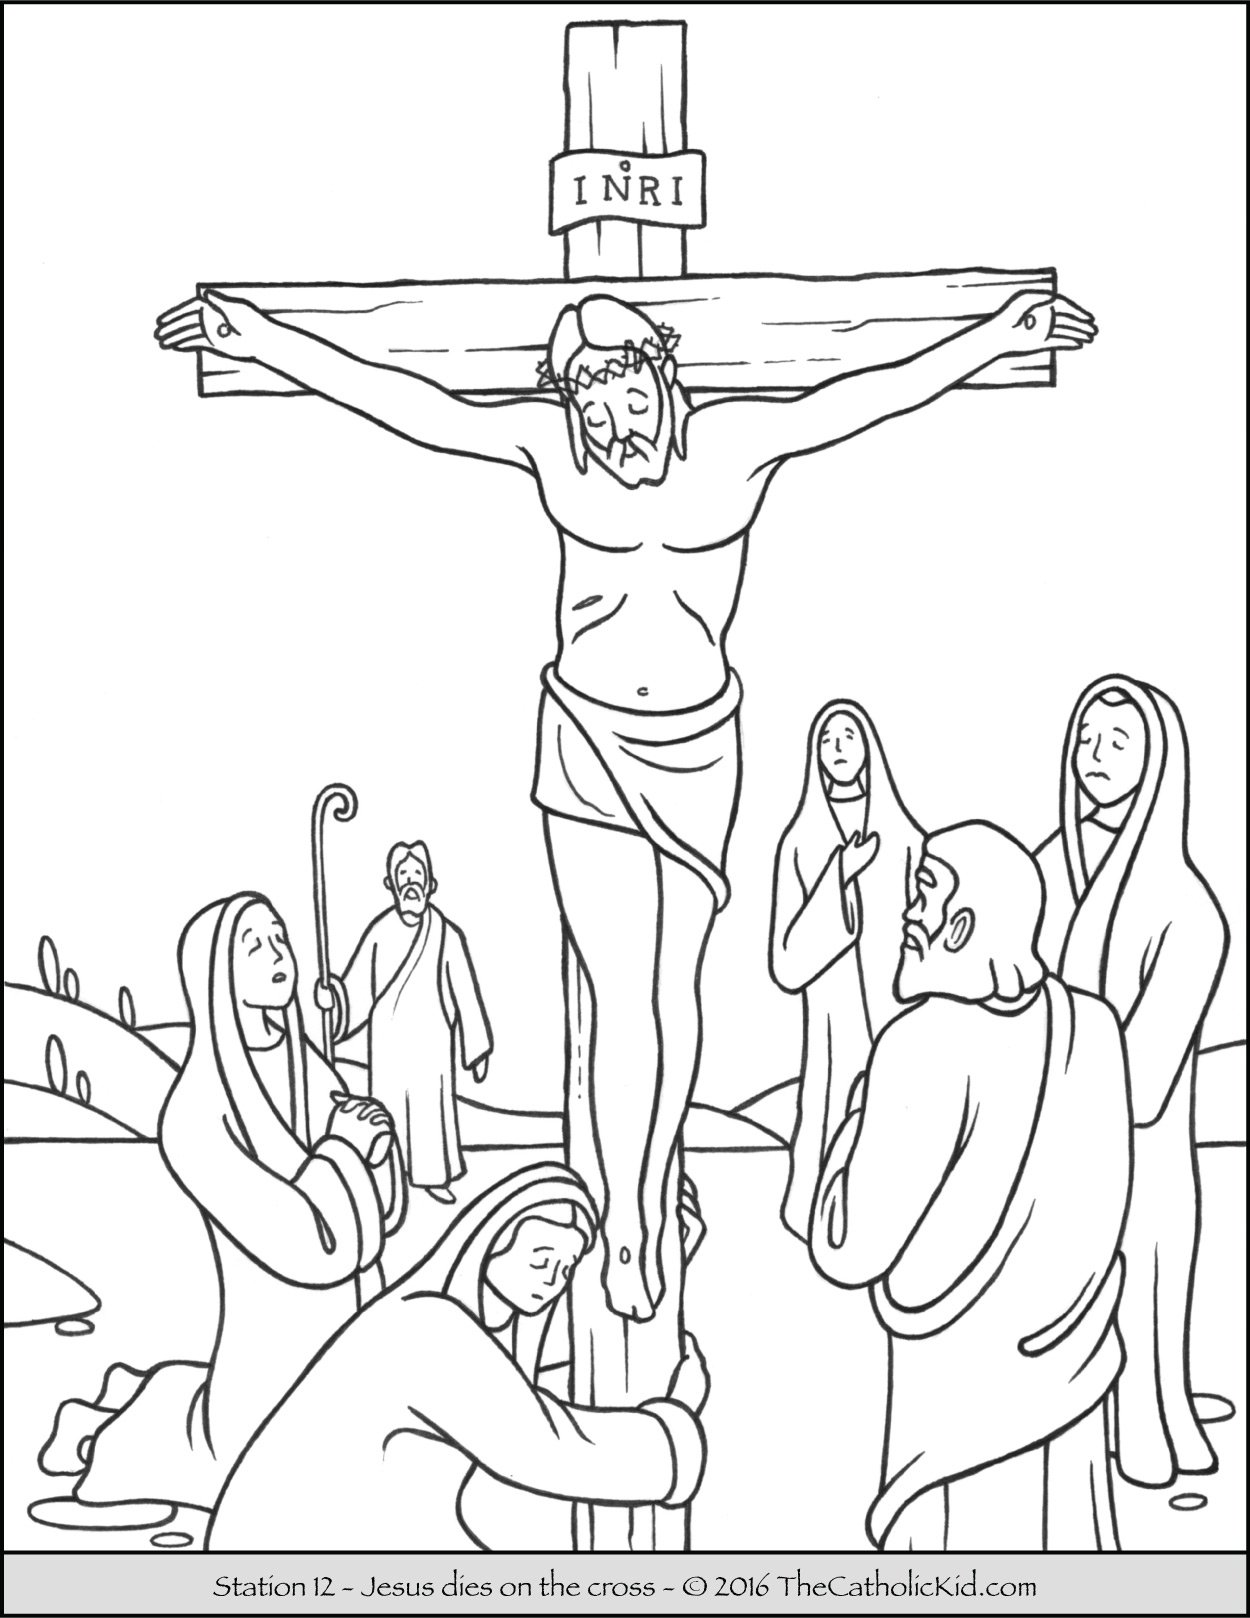 Stations of the Cross Coloring Pages 12 - Jesus dies on the cross